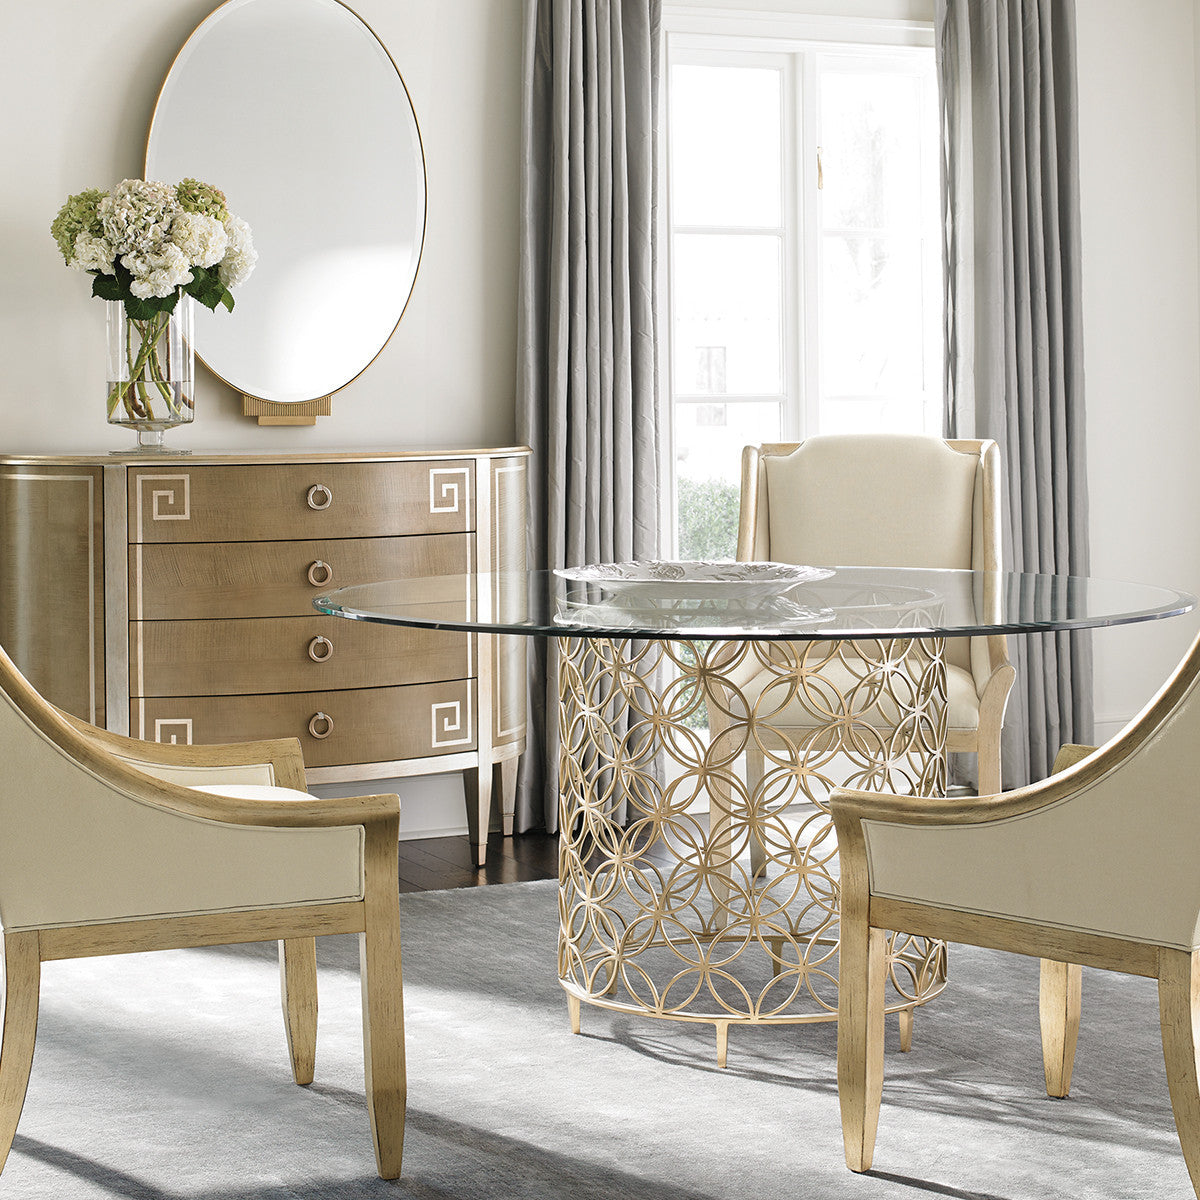 Classic Coastal Contemporary Furniture Brisbane Style